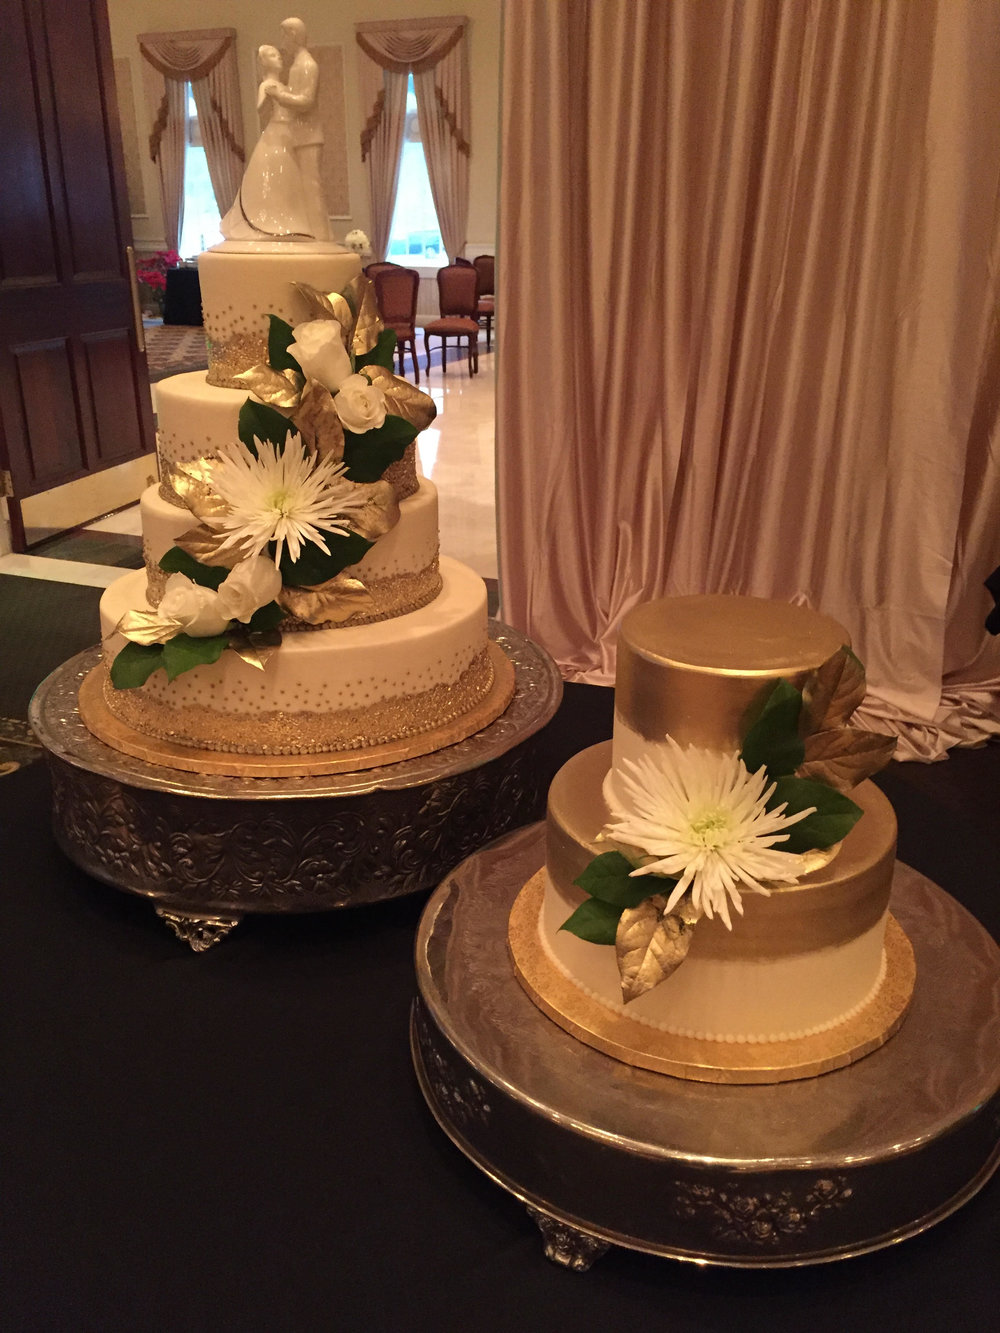 Wedding Cake Photos — SophistiCakes Bakery Drexel Hill Delaware ...